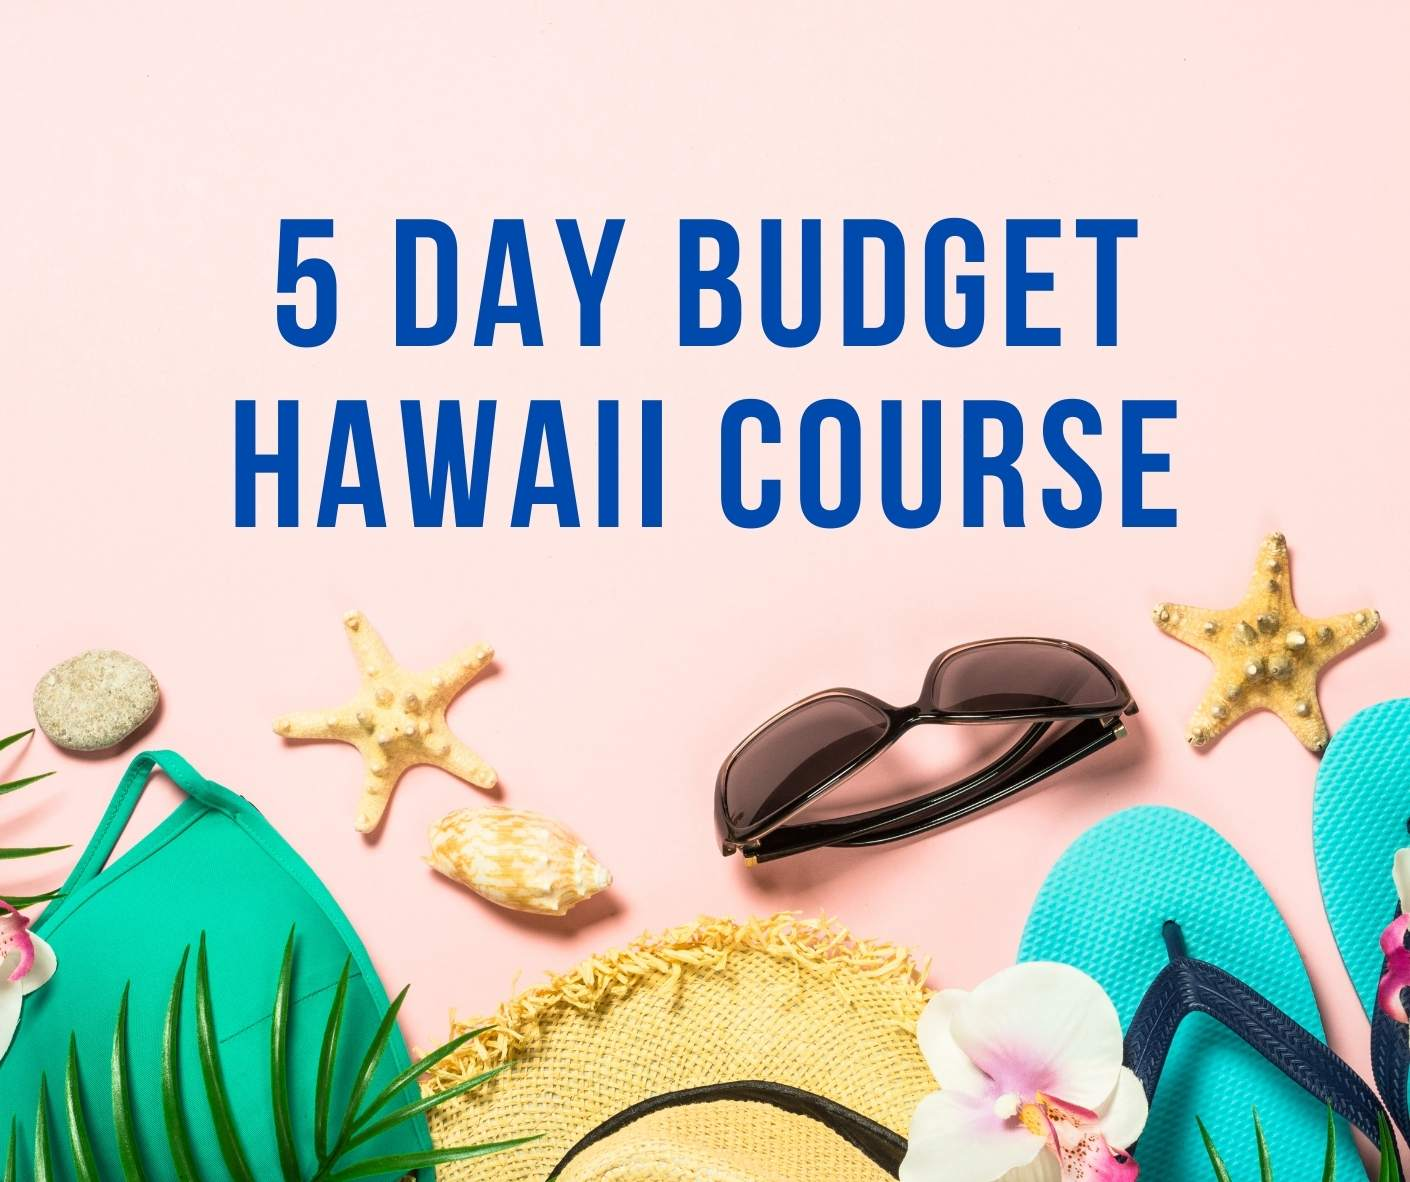 Find out how to visit Hawaii on a budget with this Hawaii email course by top Hawaii blog Hawaii Travel with Kids. Image of a tropical flatlay.